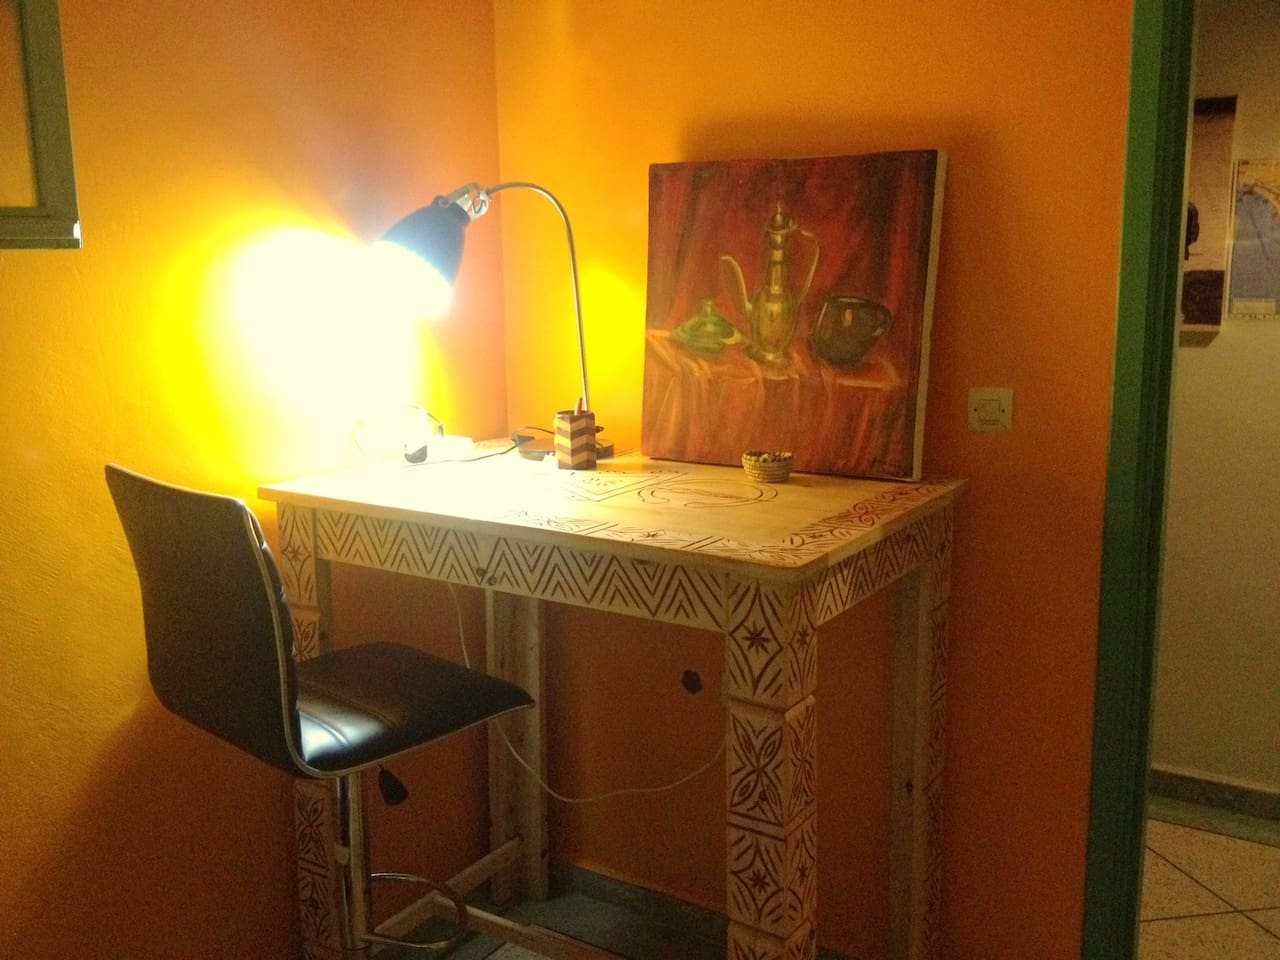 There are 2 tables like this one available for you either for working or eating. Up to you! Make it feel like your home!